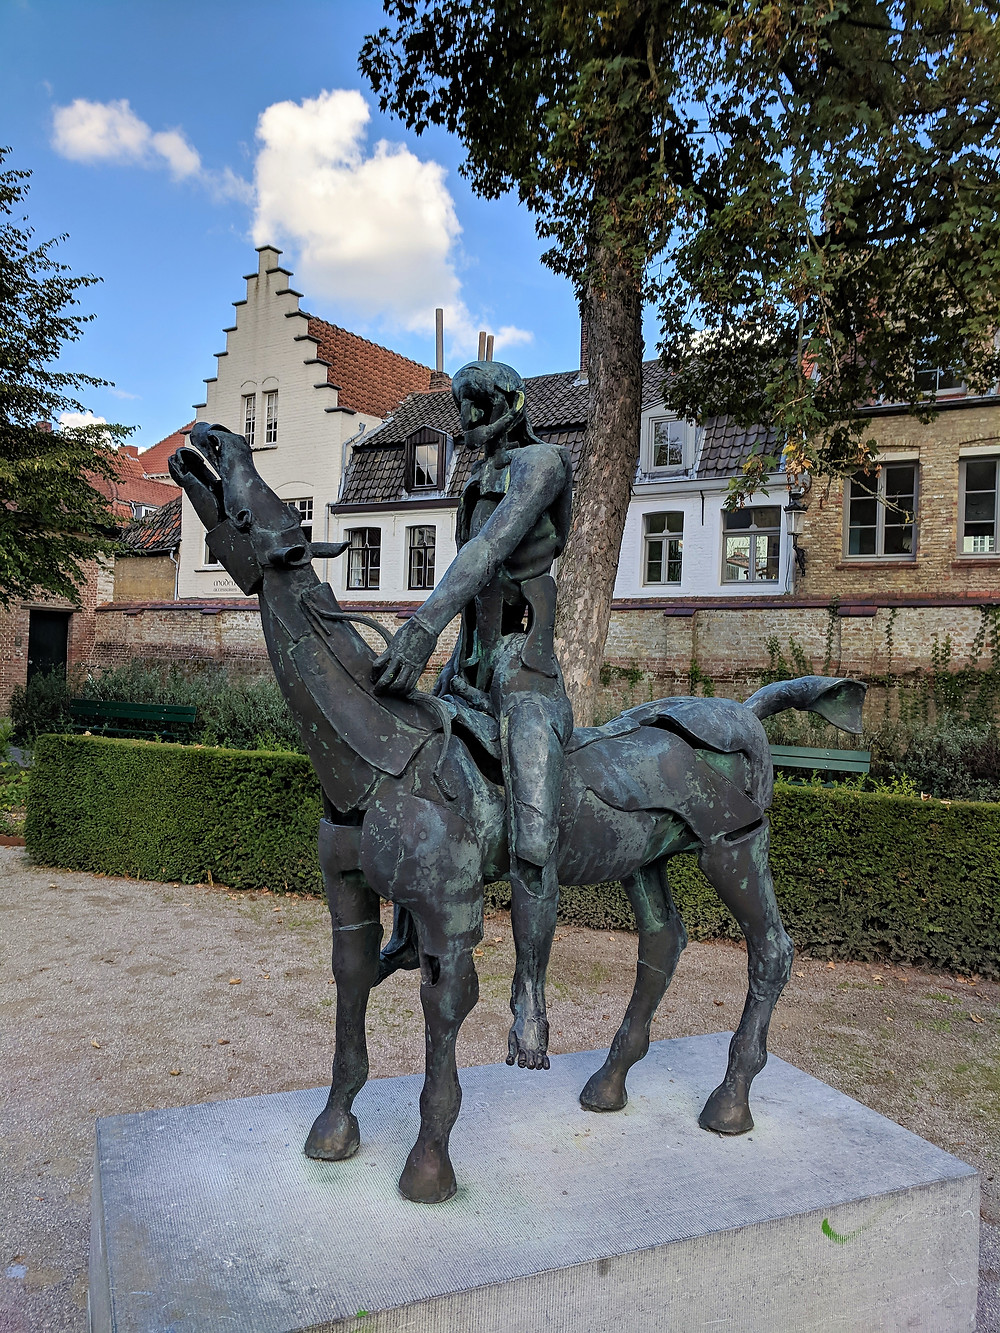 One of the Four Horsemen, Arendts Garden, Bruges